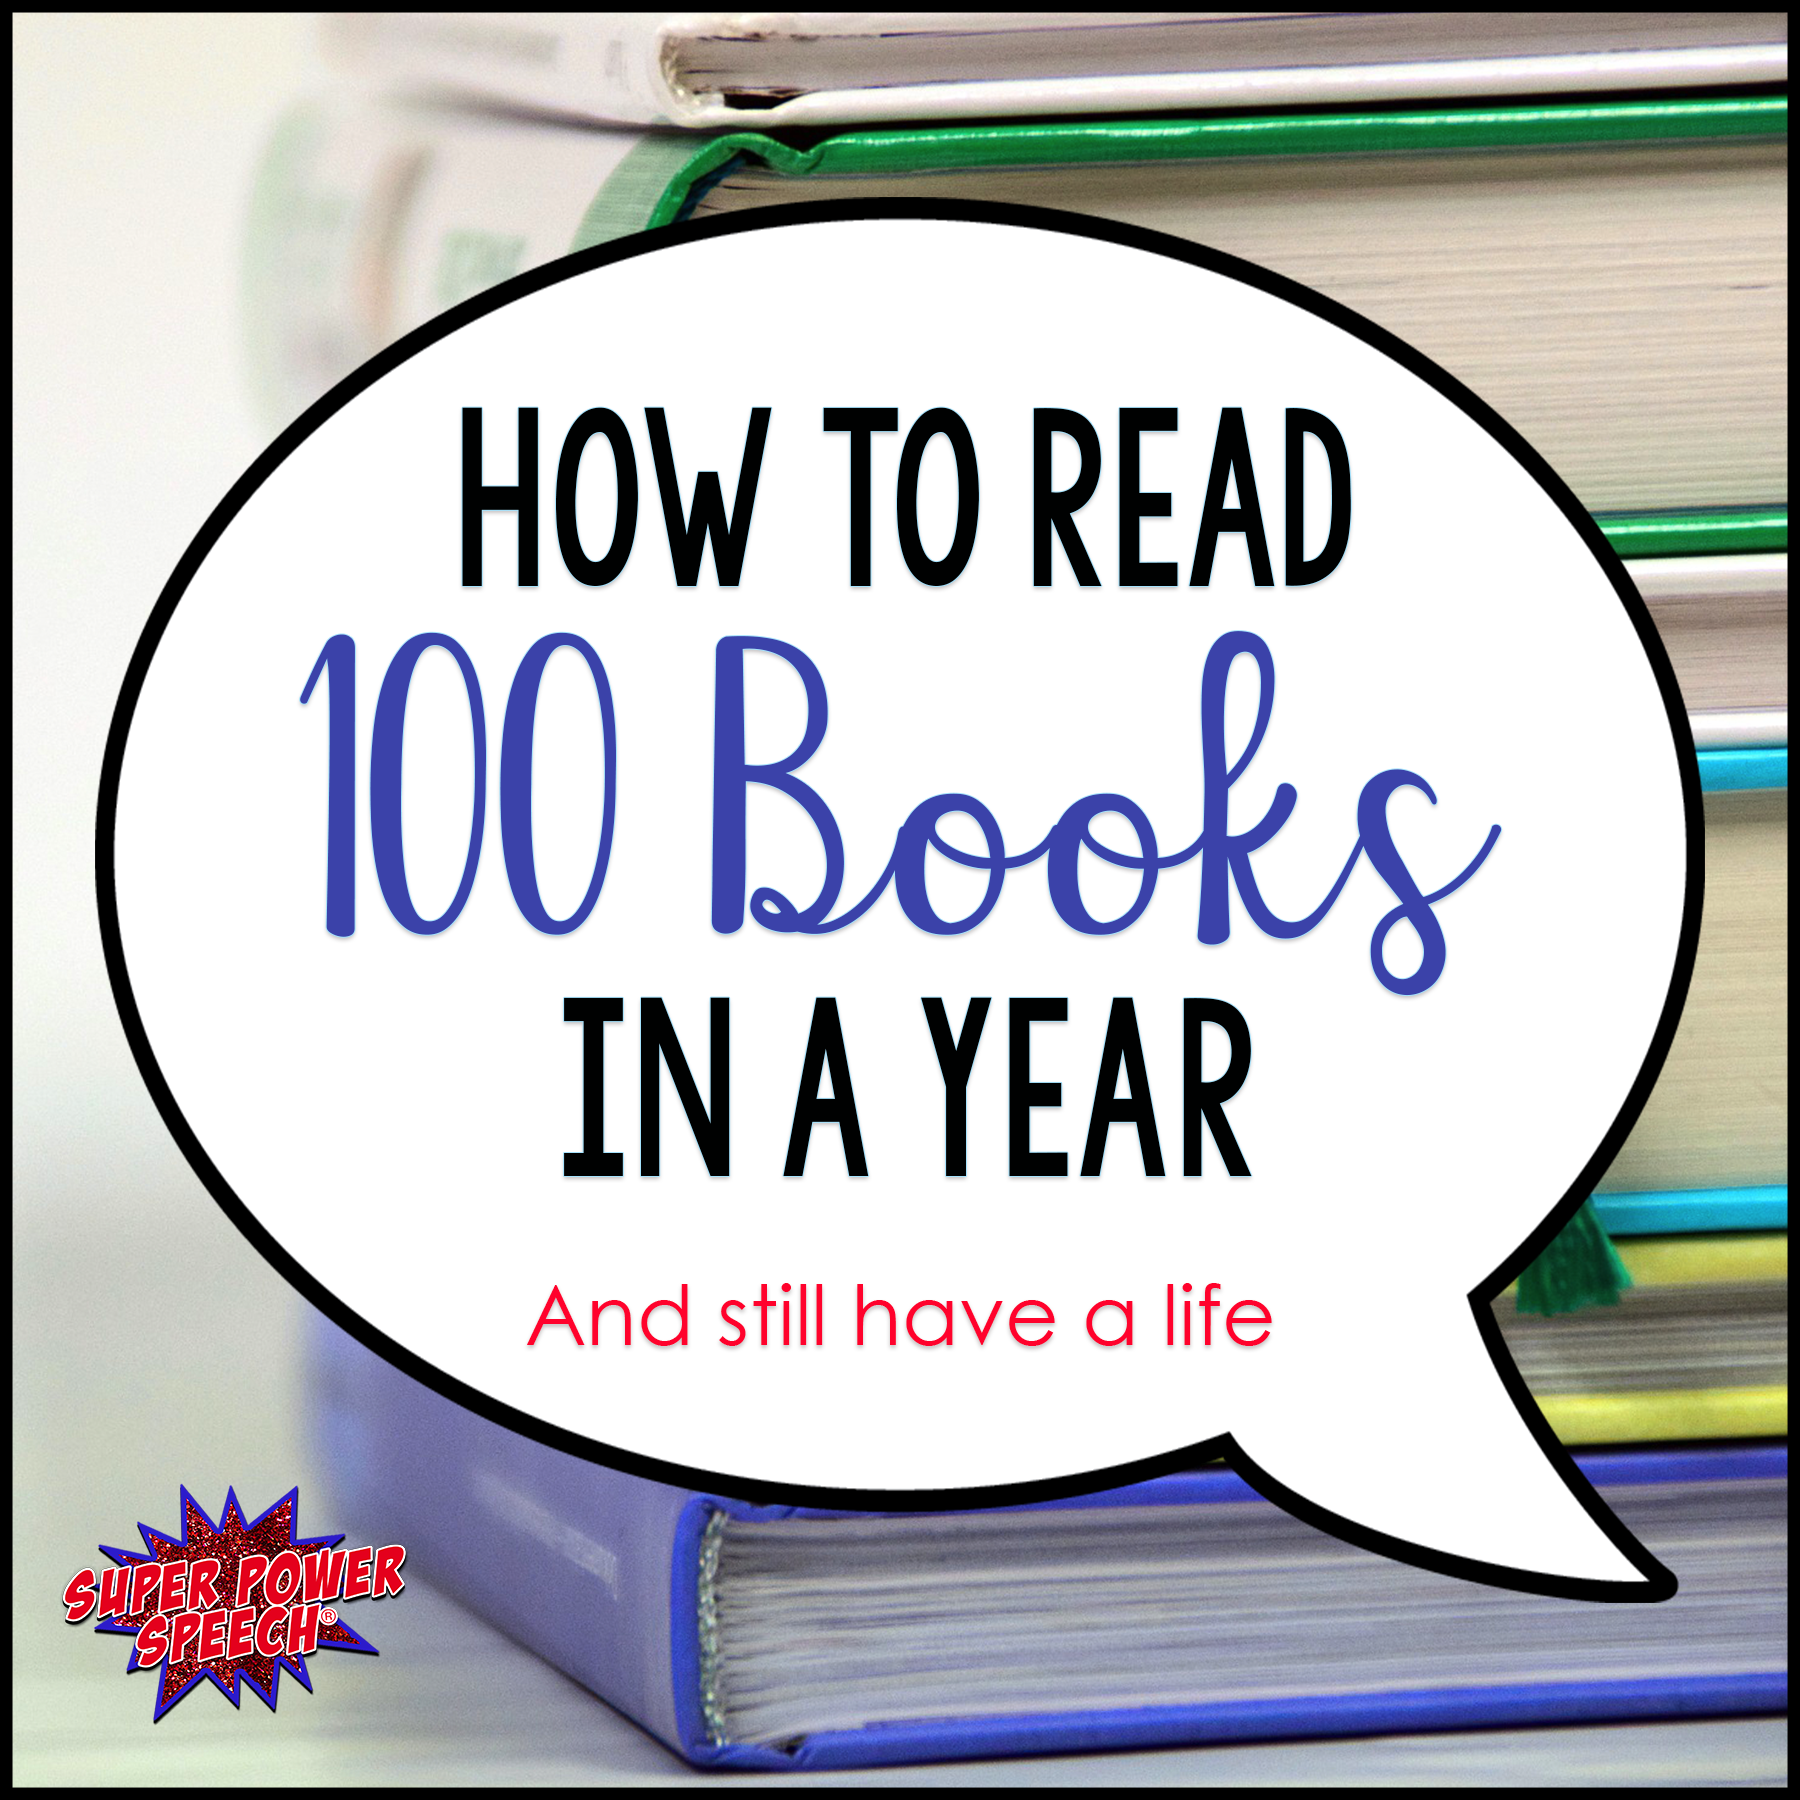 How to read 100 books in a year (and still have a life)!!